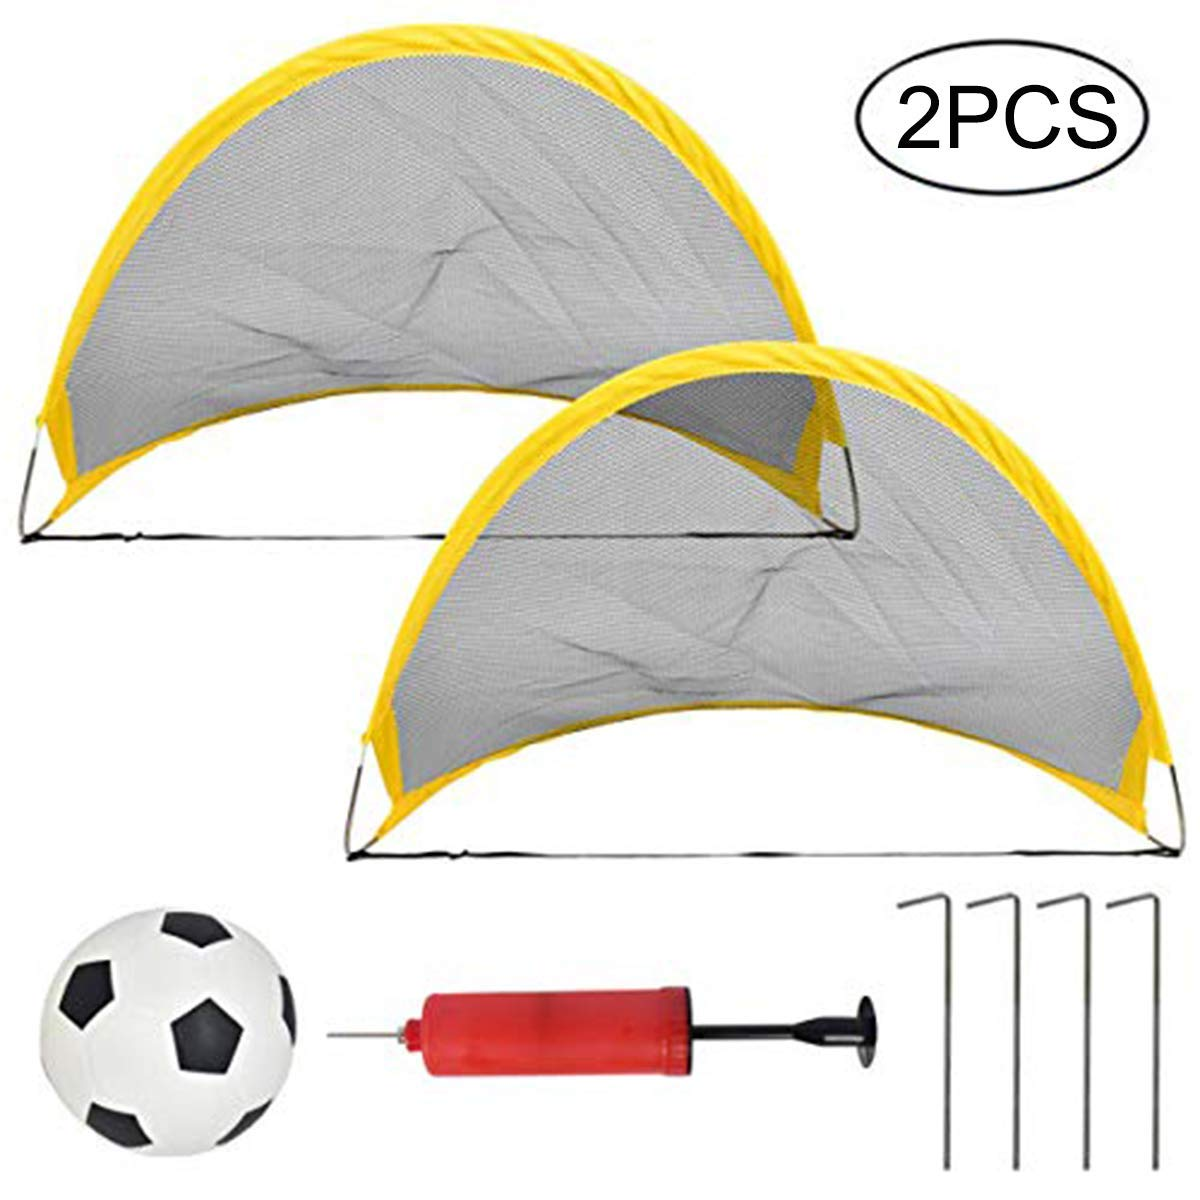 Firlar Portable Mini Soccer Goals, Set of 2 Football Goals Post Ball Net with Soccer Ball and Ball Pump Kit for Kids Children Toddler, Perfect for Outdoor and Indoor